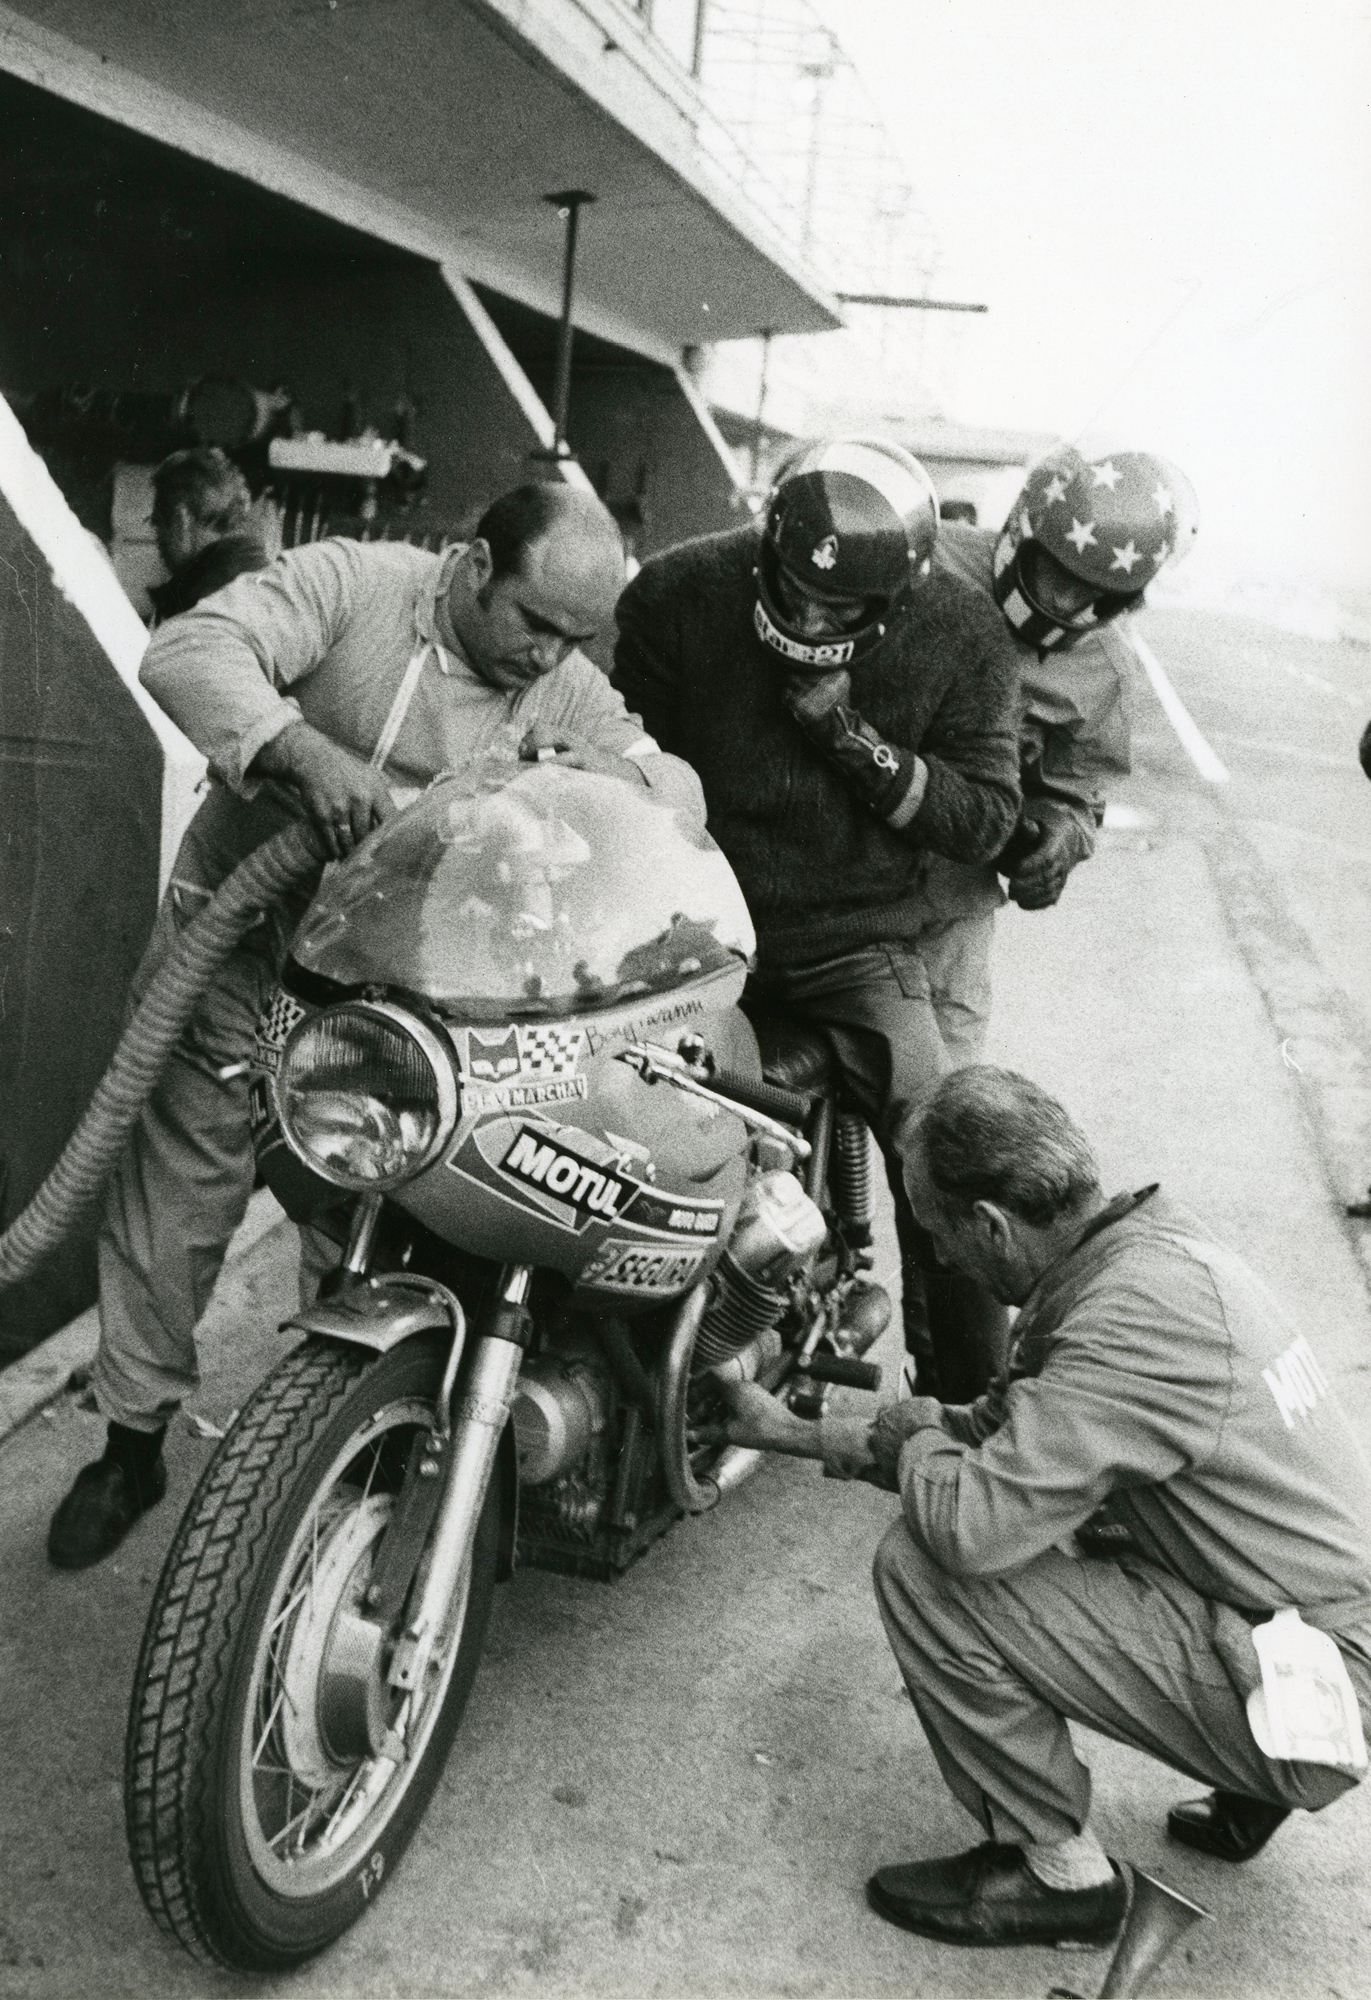 Moto Guzzi at 24-Hour Le Mans in 1972